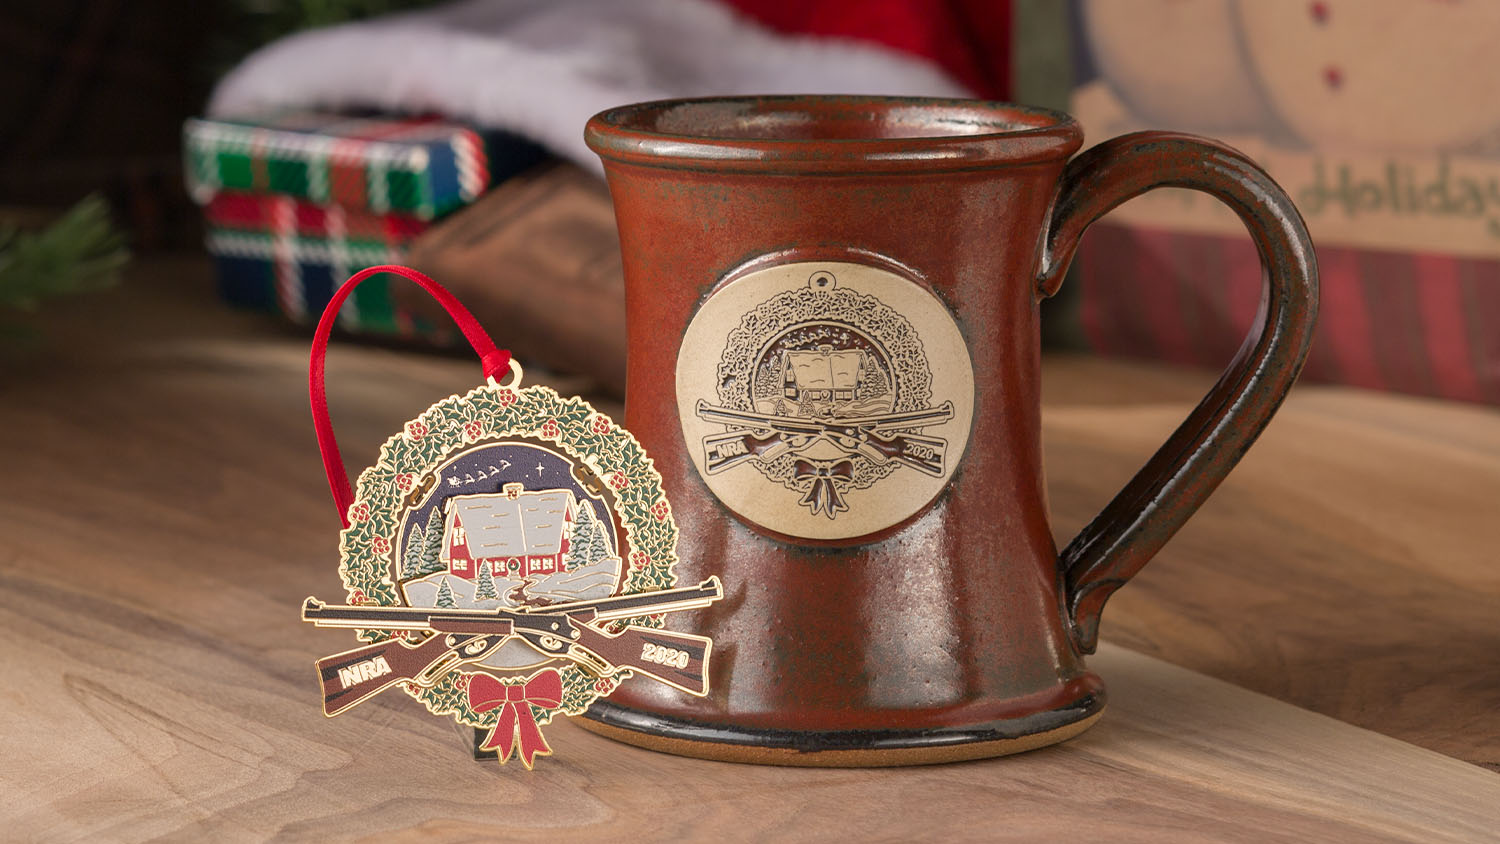 Christmas Comes Early - Limited Edition Christmas Ornament and Mug Now Available at NRAstore.com